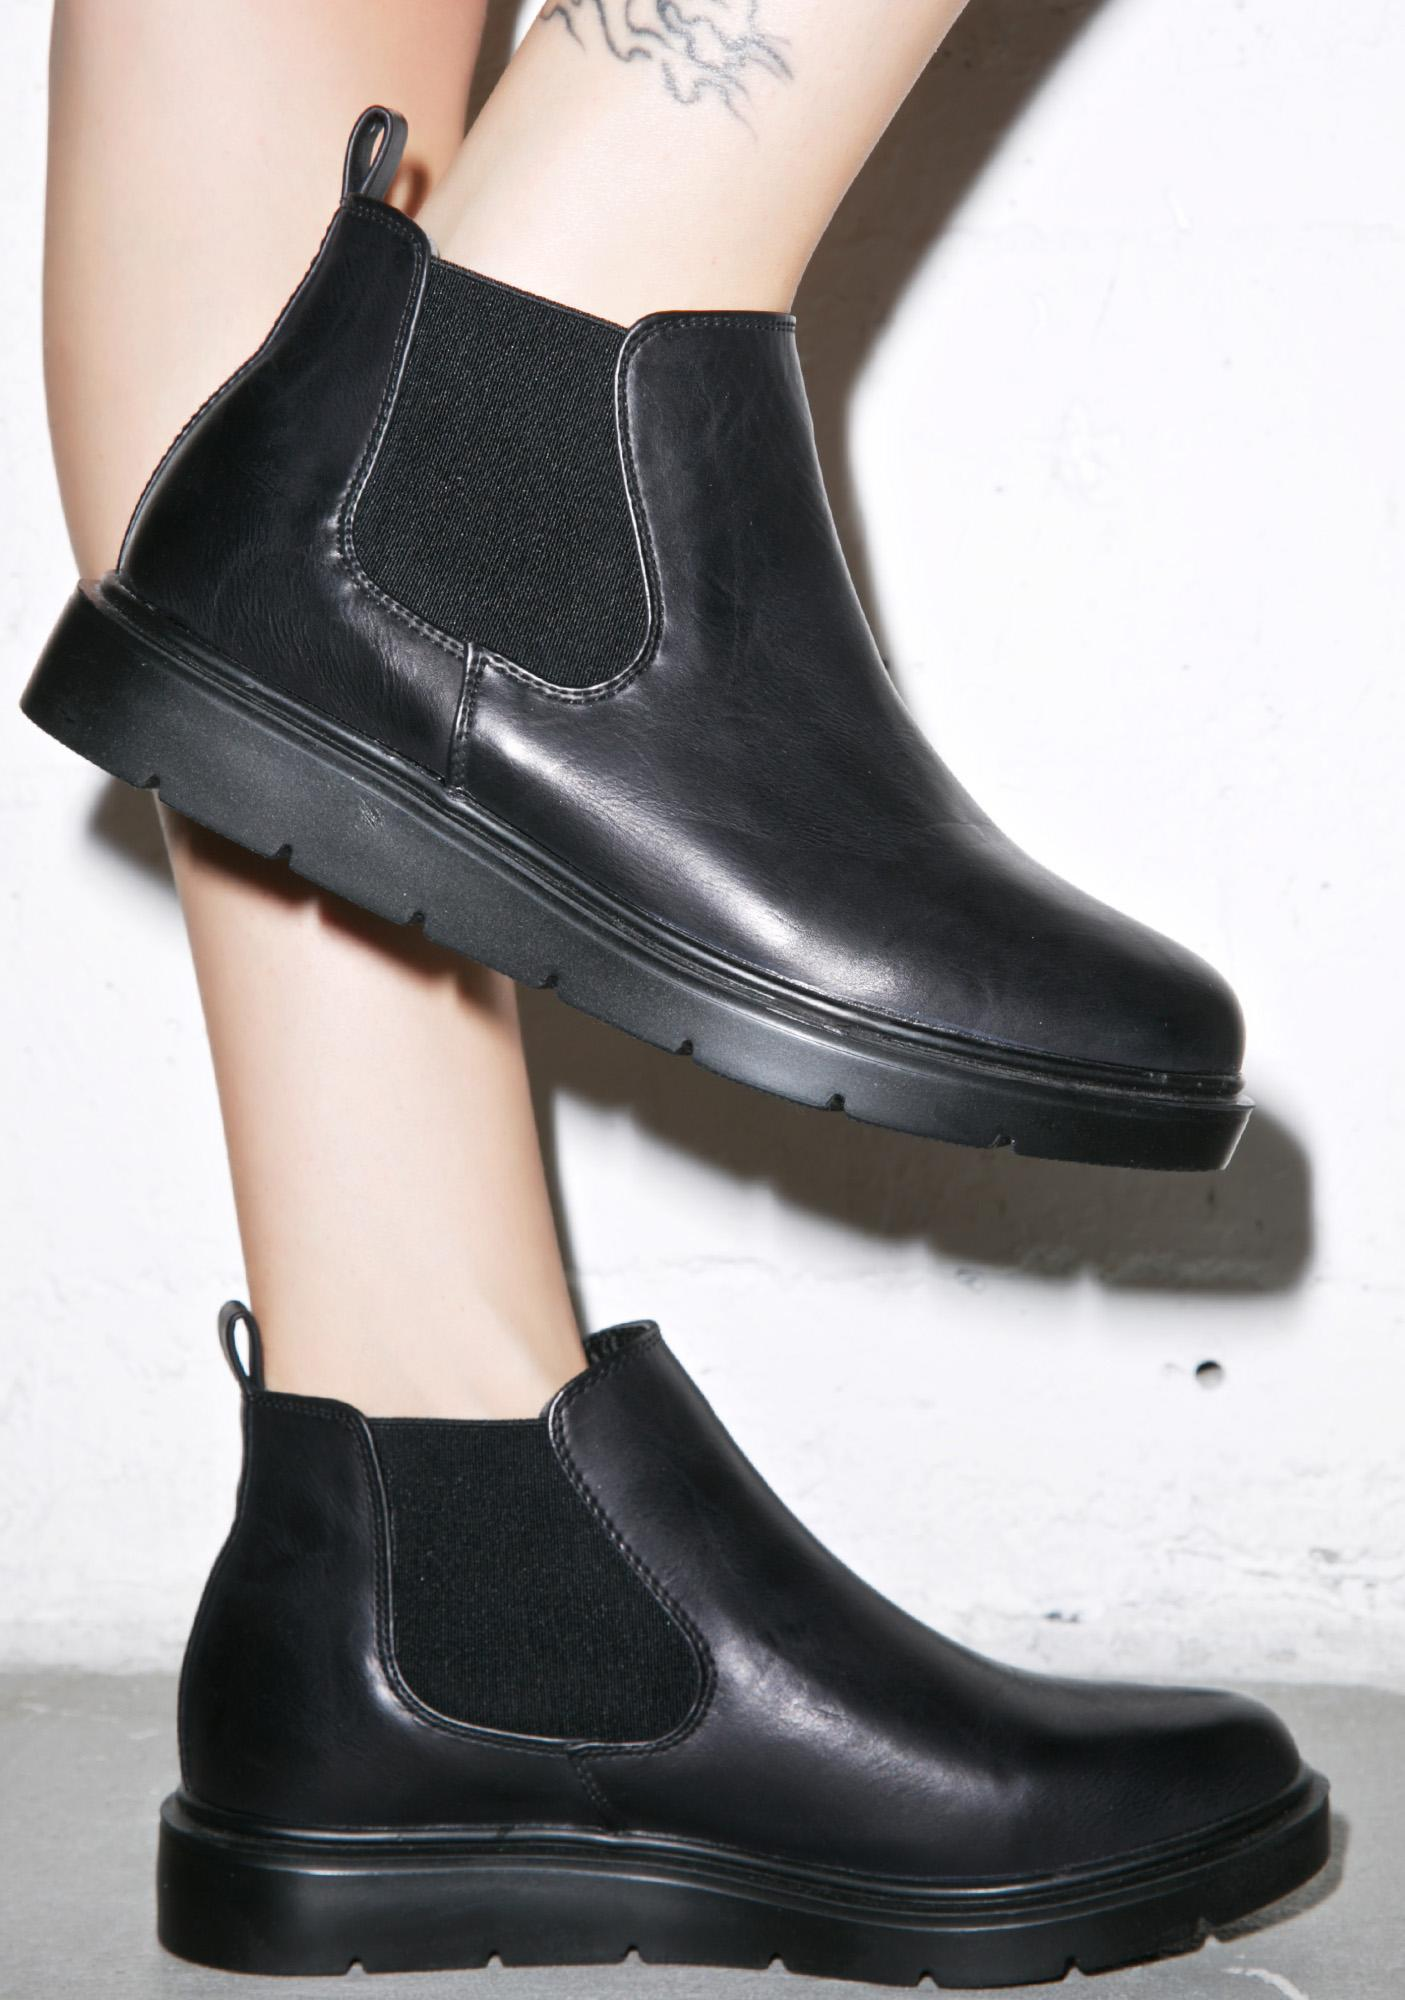 South Chelsea Boots